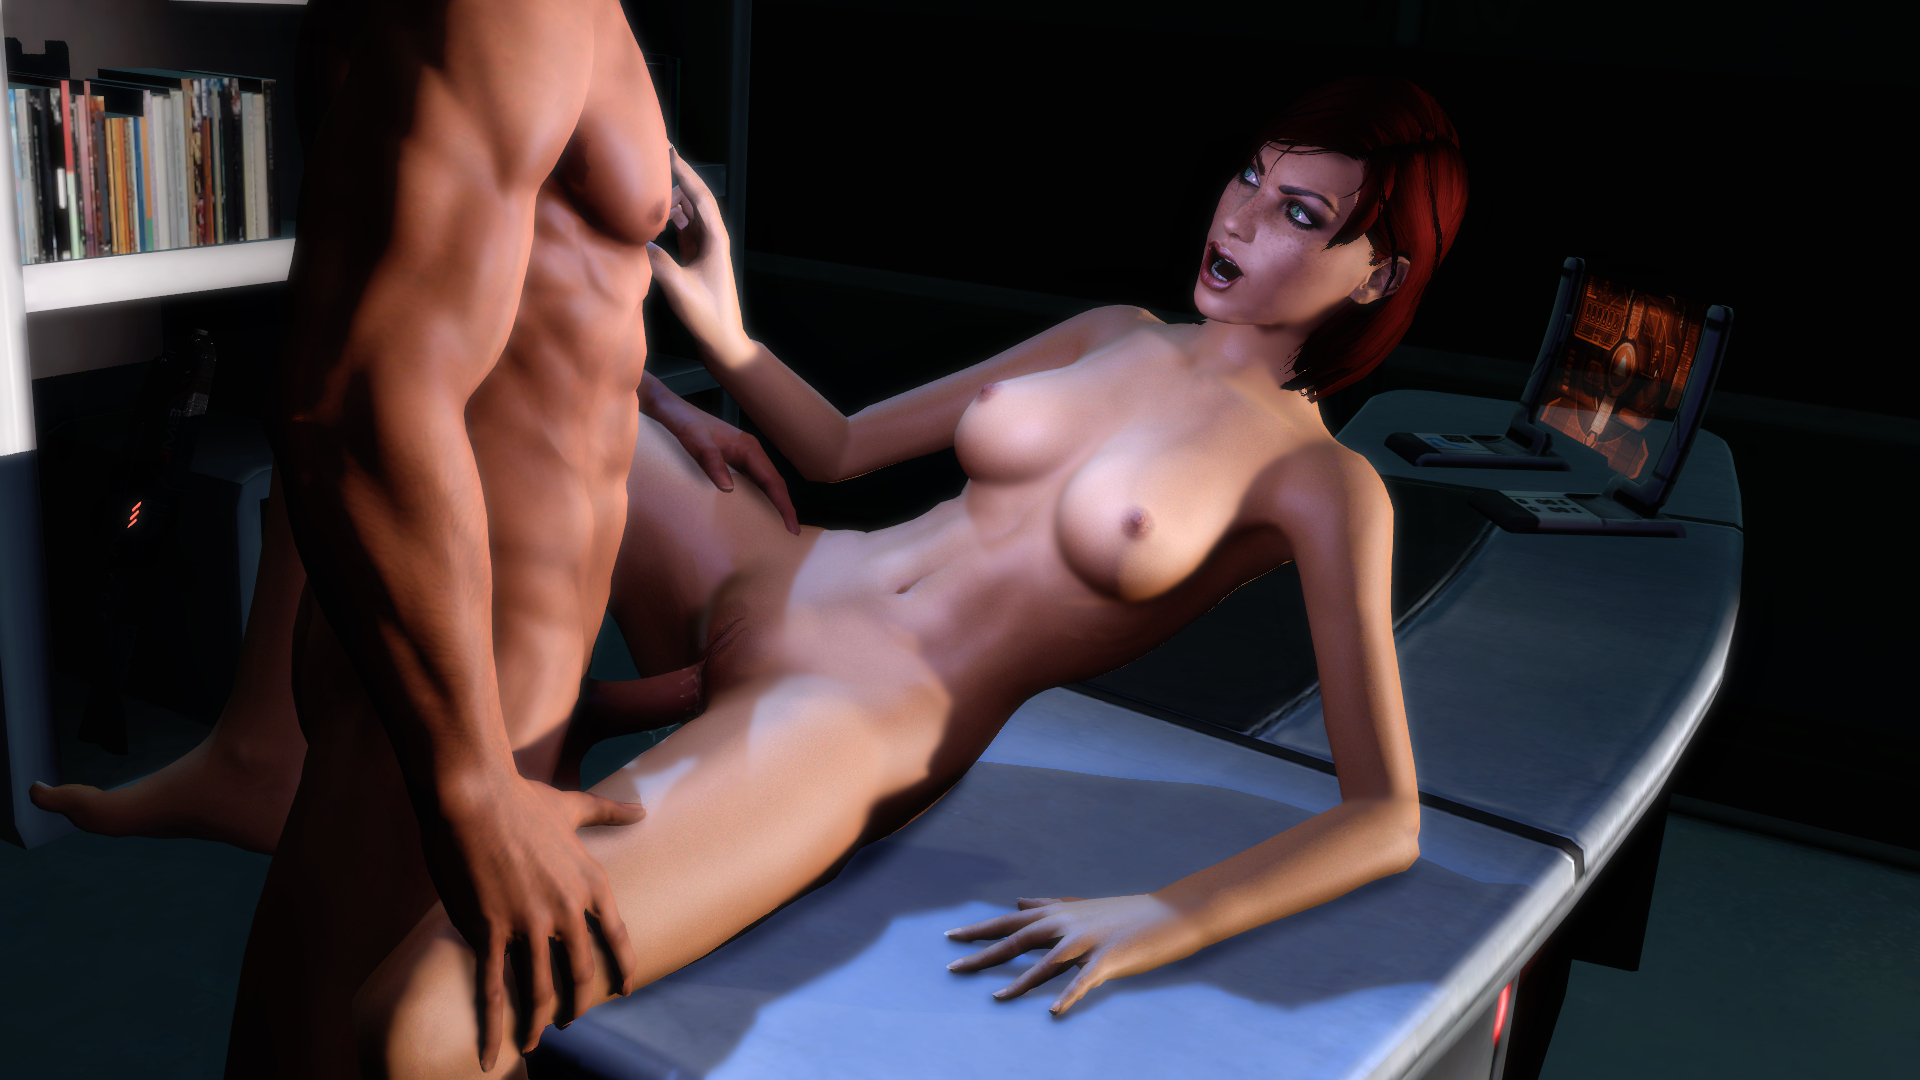 Mass effect porn mods exploited videos